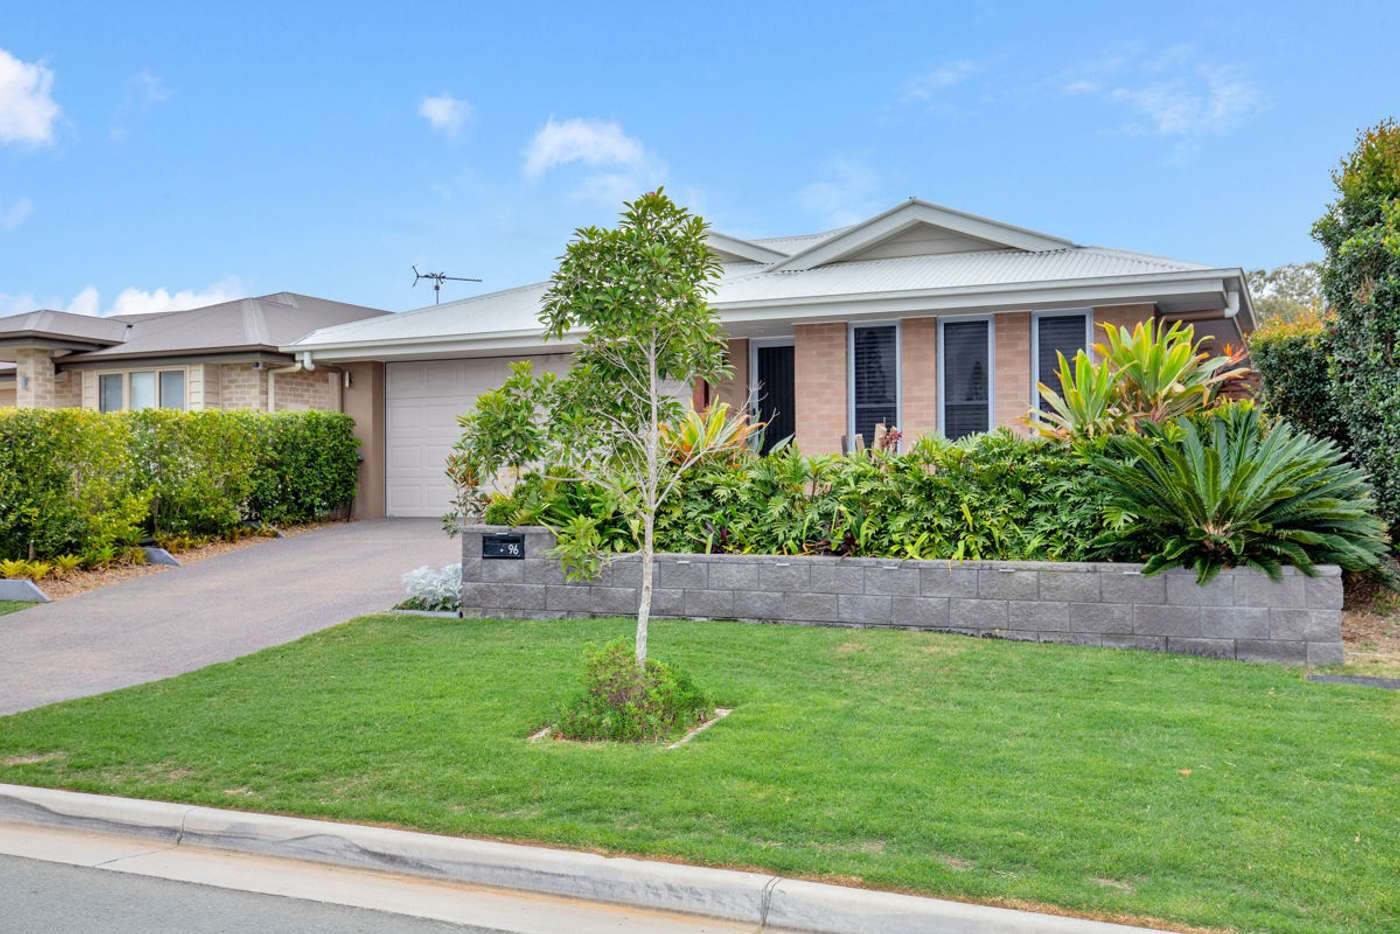 Fifth view of Homely house listing, 96 Brookside Cct, Ormeau QLD 4208